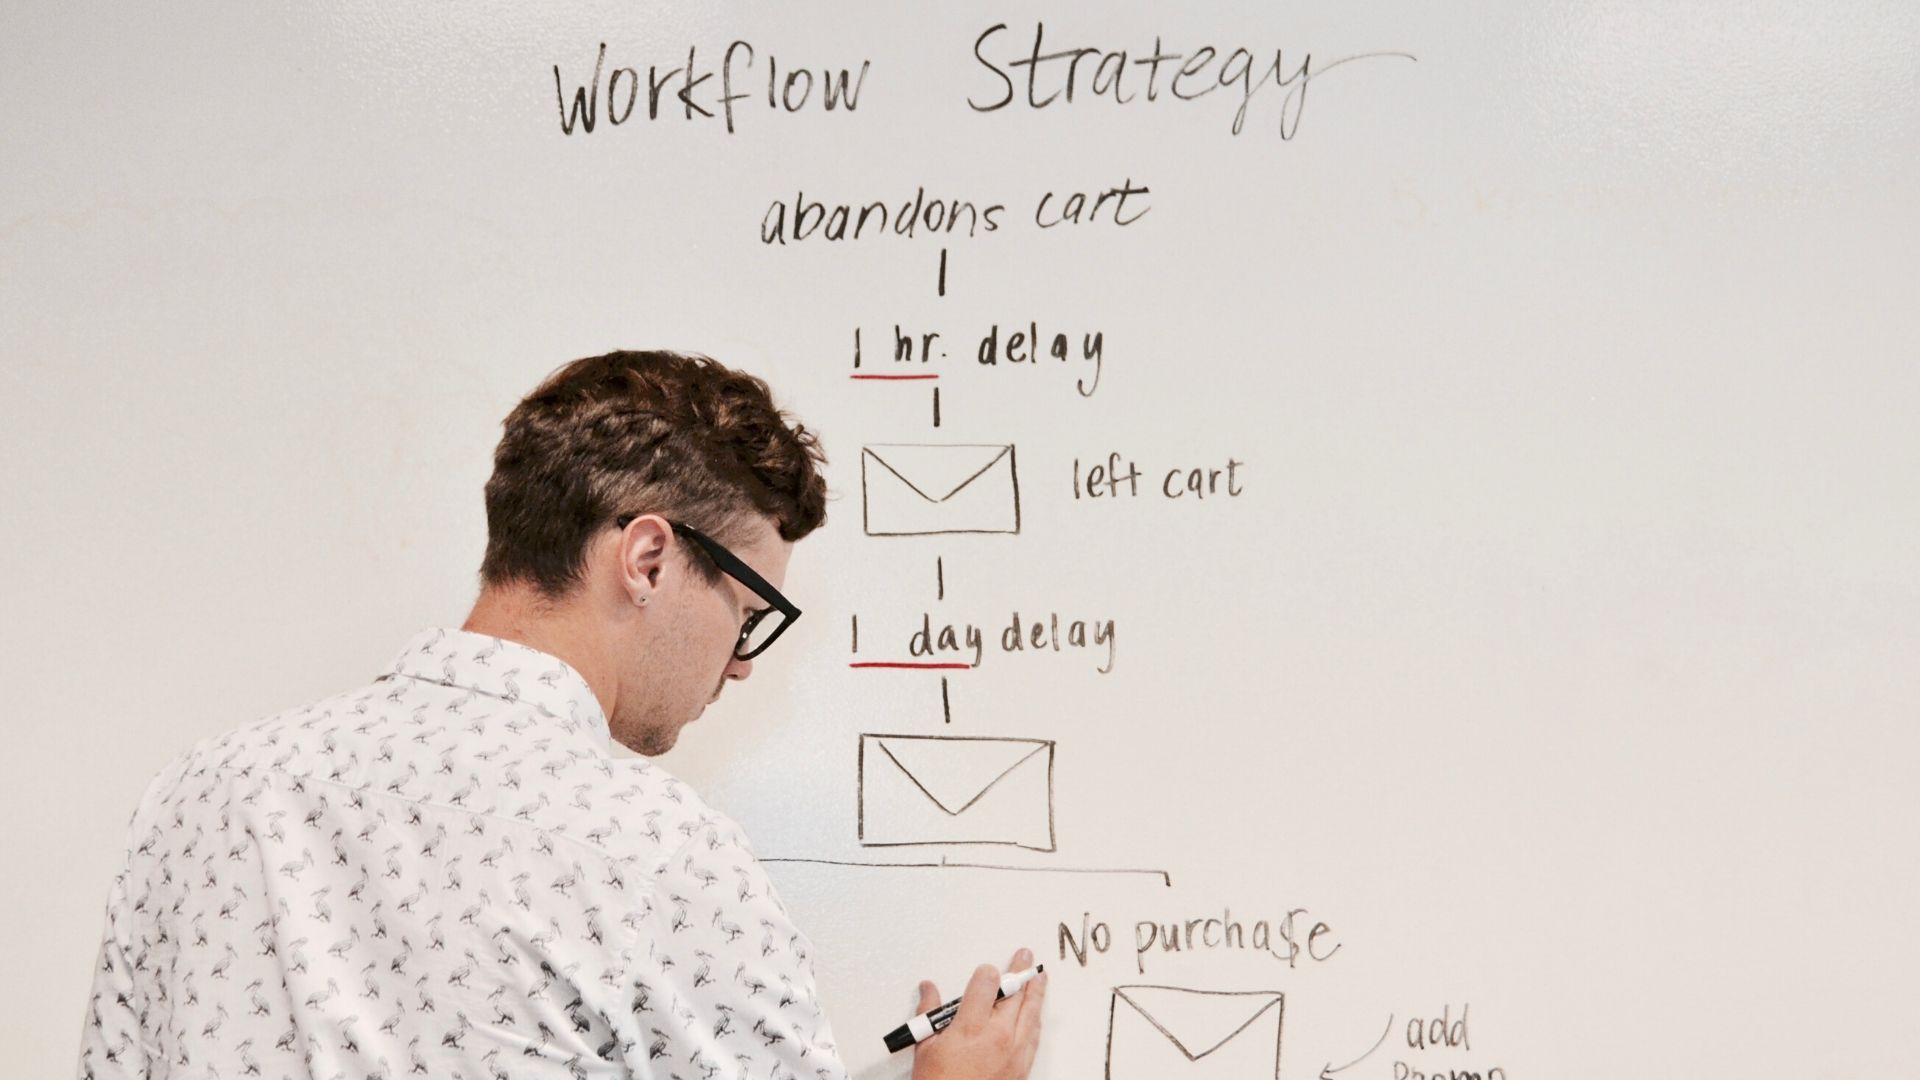 blog image - digital strategy - guy writing on whiteboard